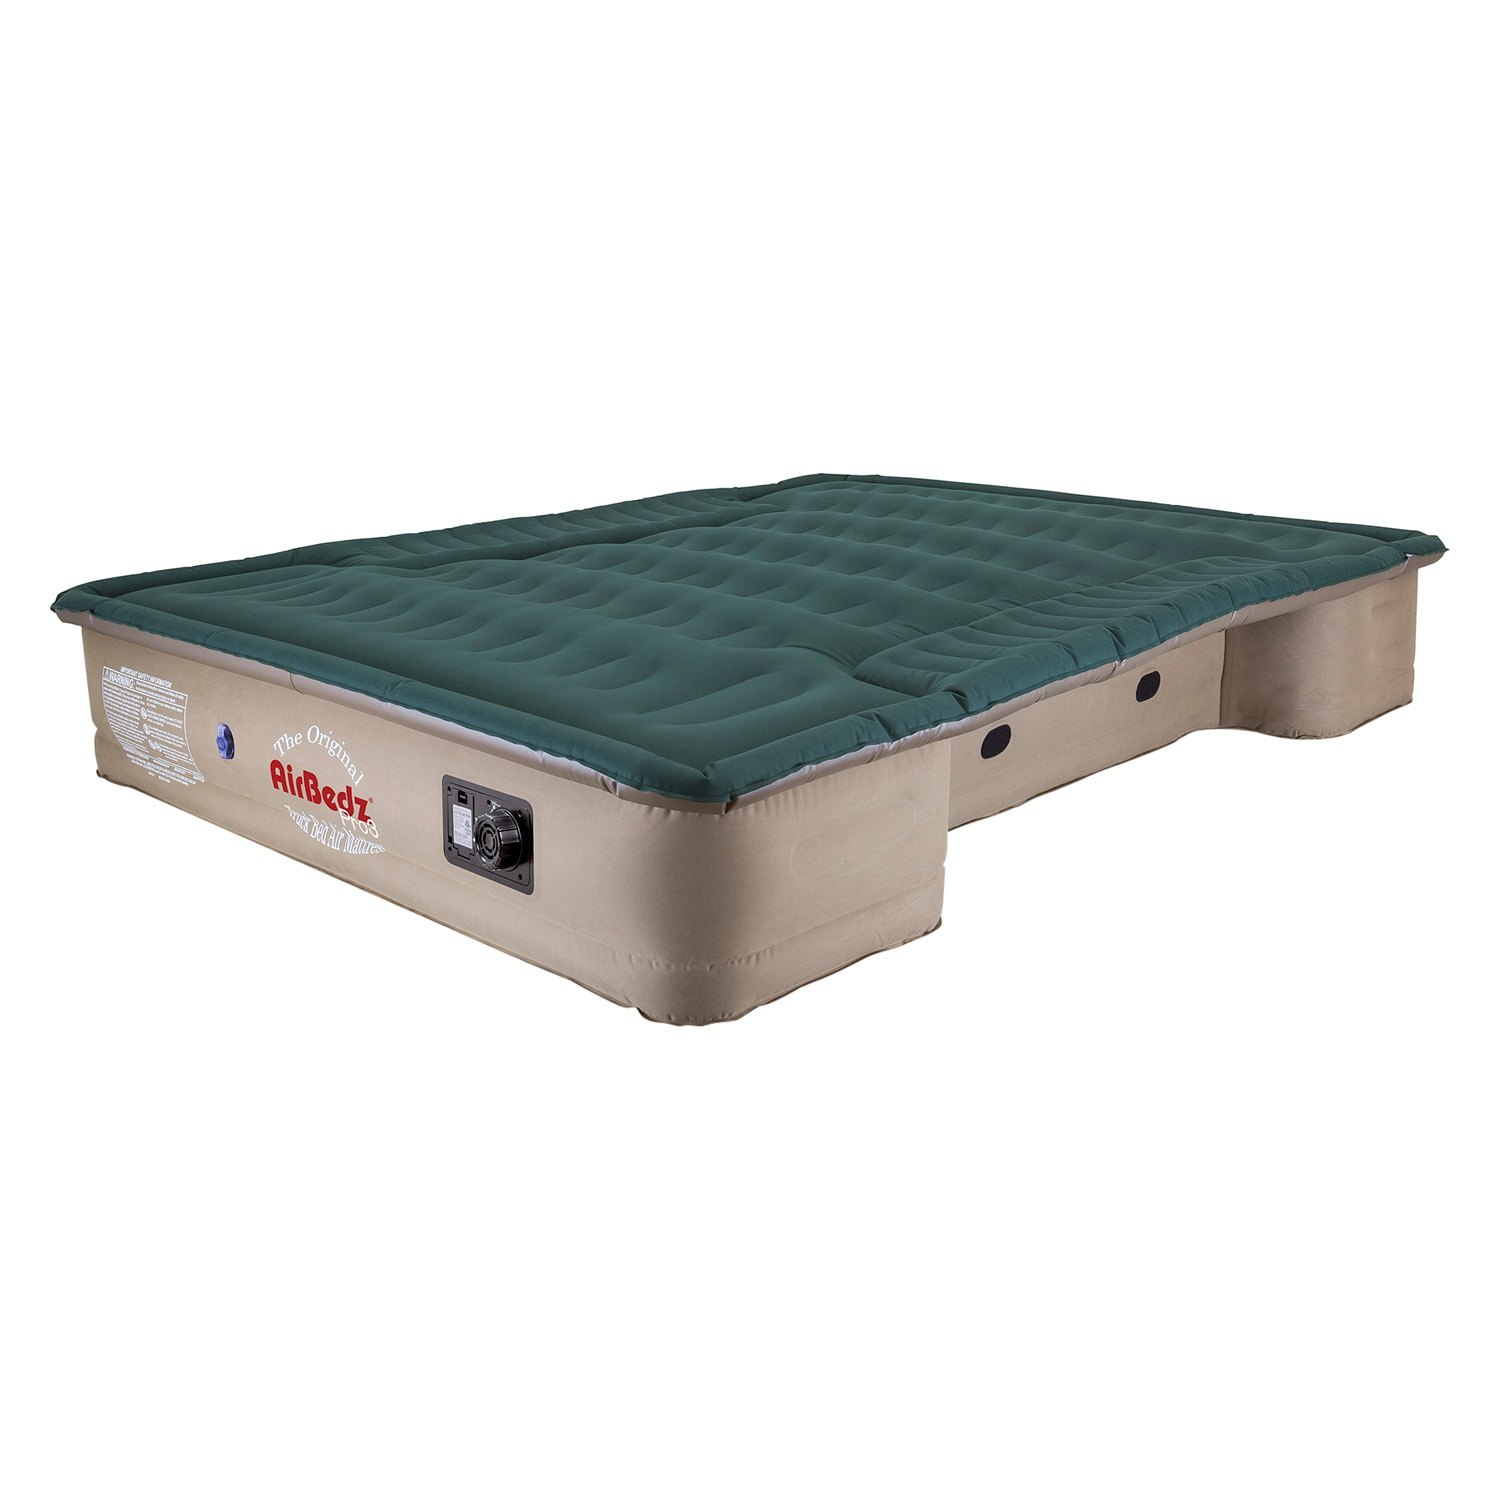 Airbedz ford f 150 1998 2000 original truck bed air for Bed mattress